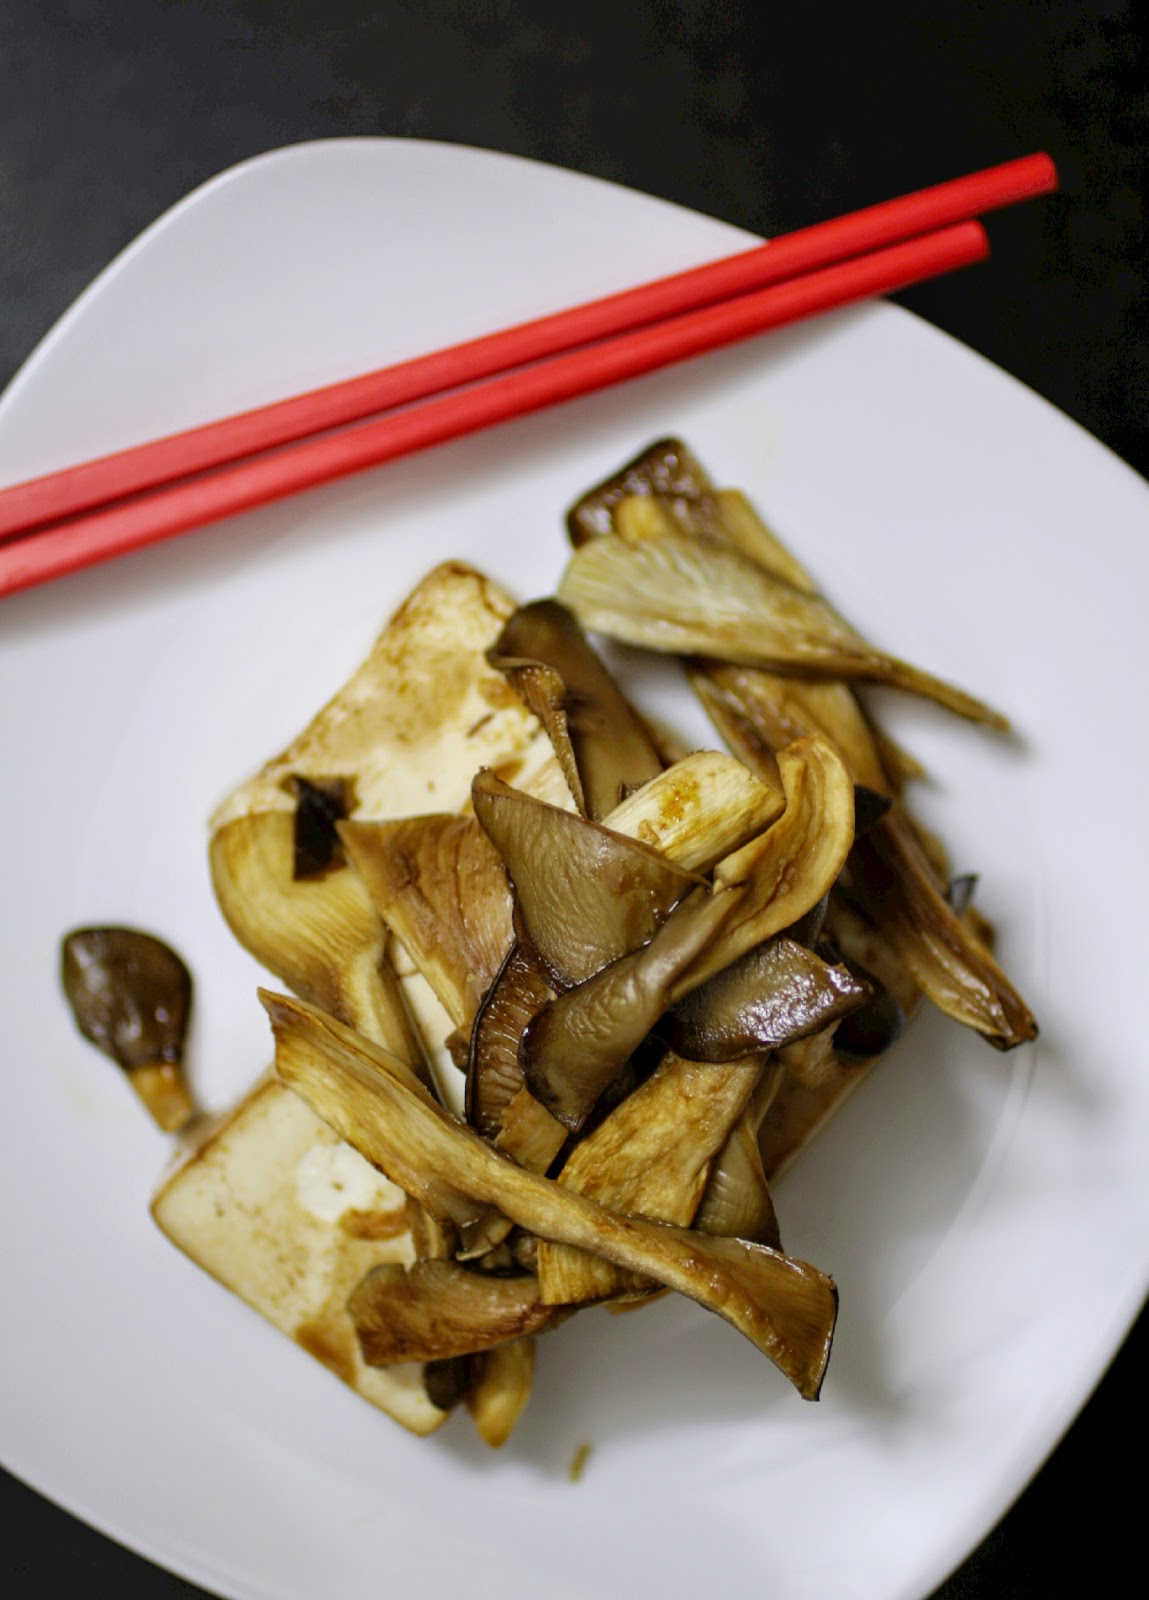 Home grown oyster mushrooms (from GroCycle) with griddled tofu.  I wanted the mushrooms to be the star of the dish so used a simple marinade for the tofu using soy sauce, miso paste and sesame oil.